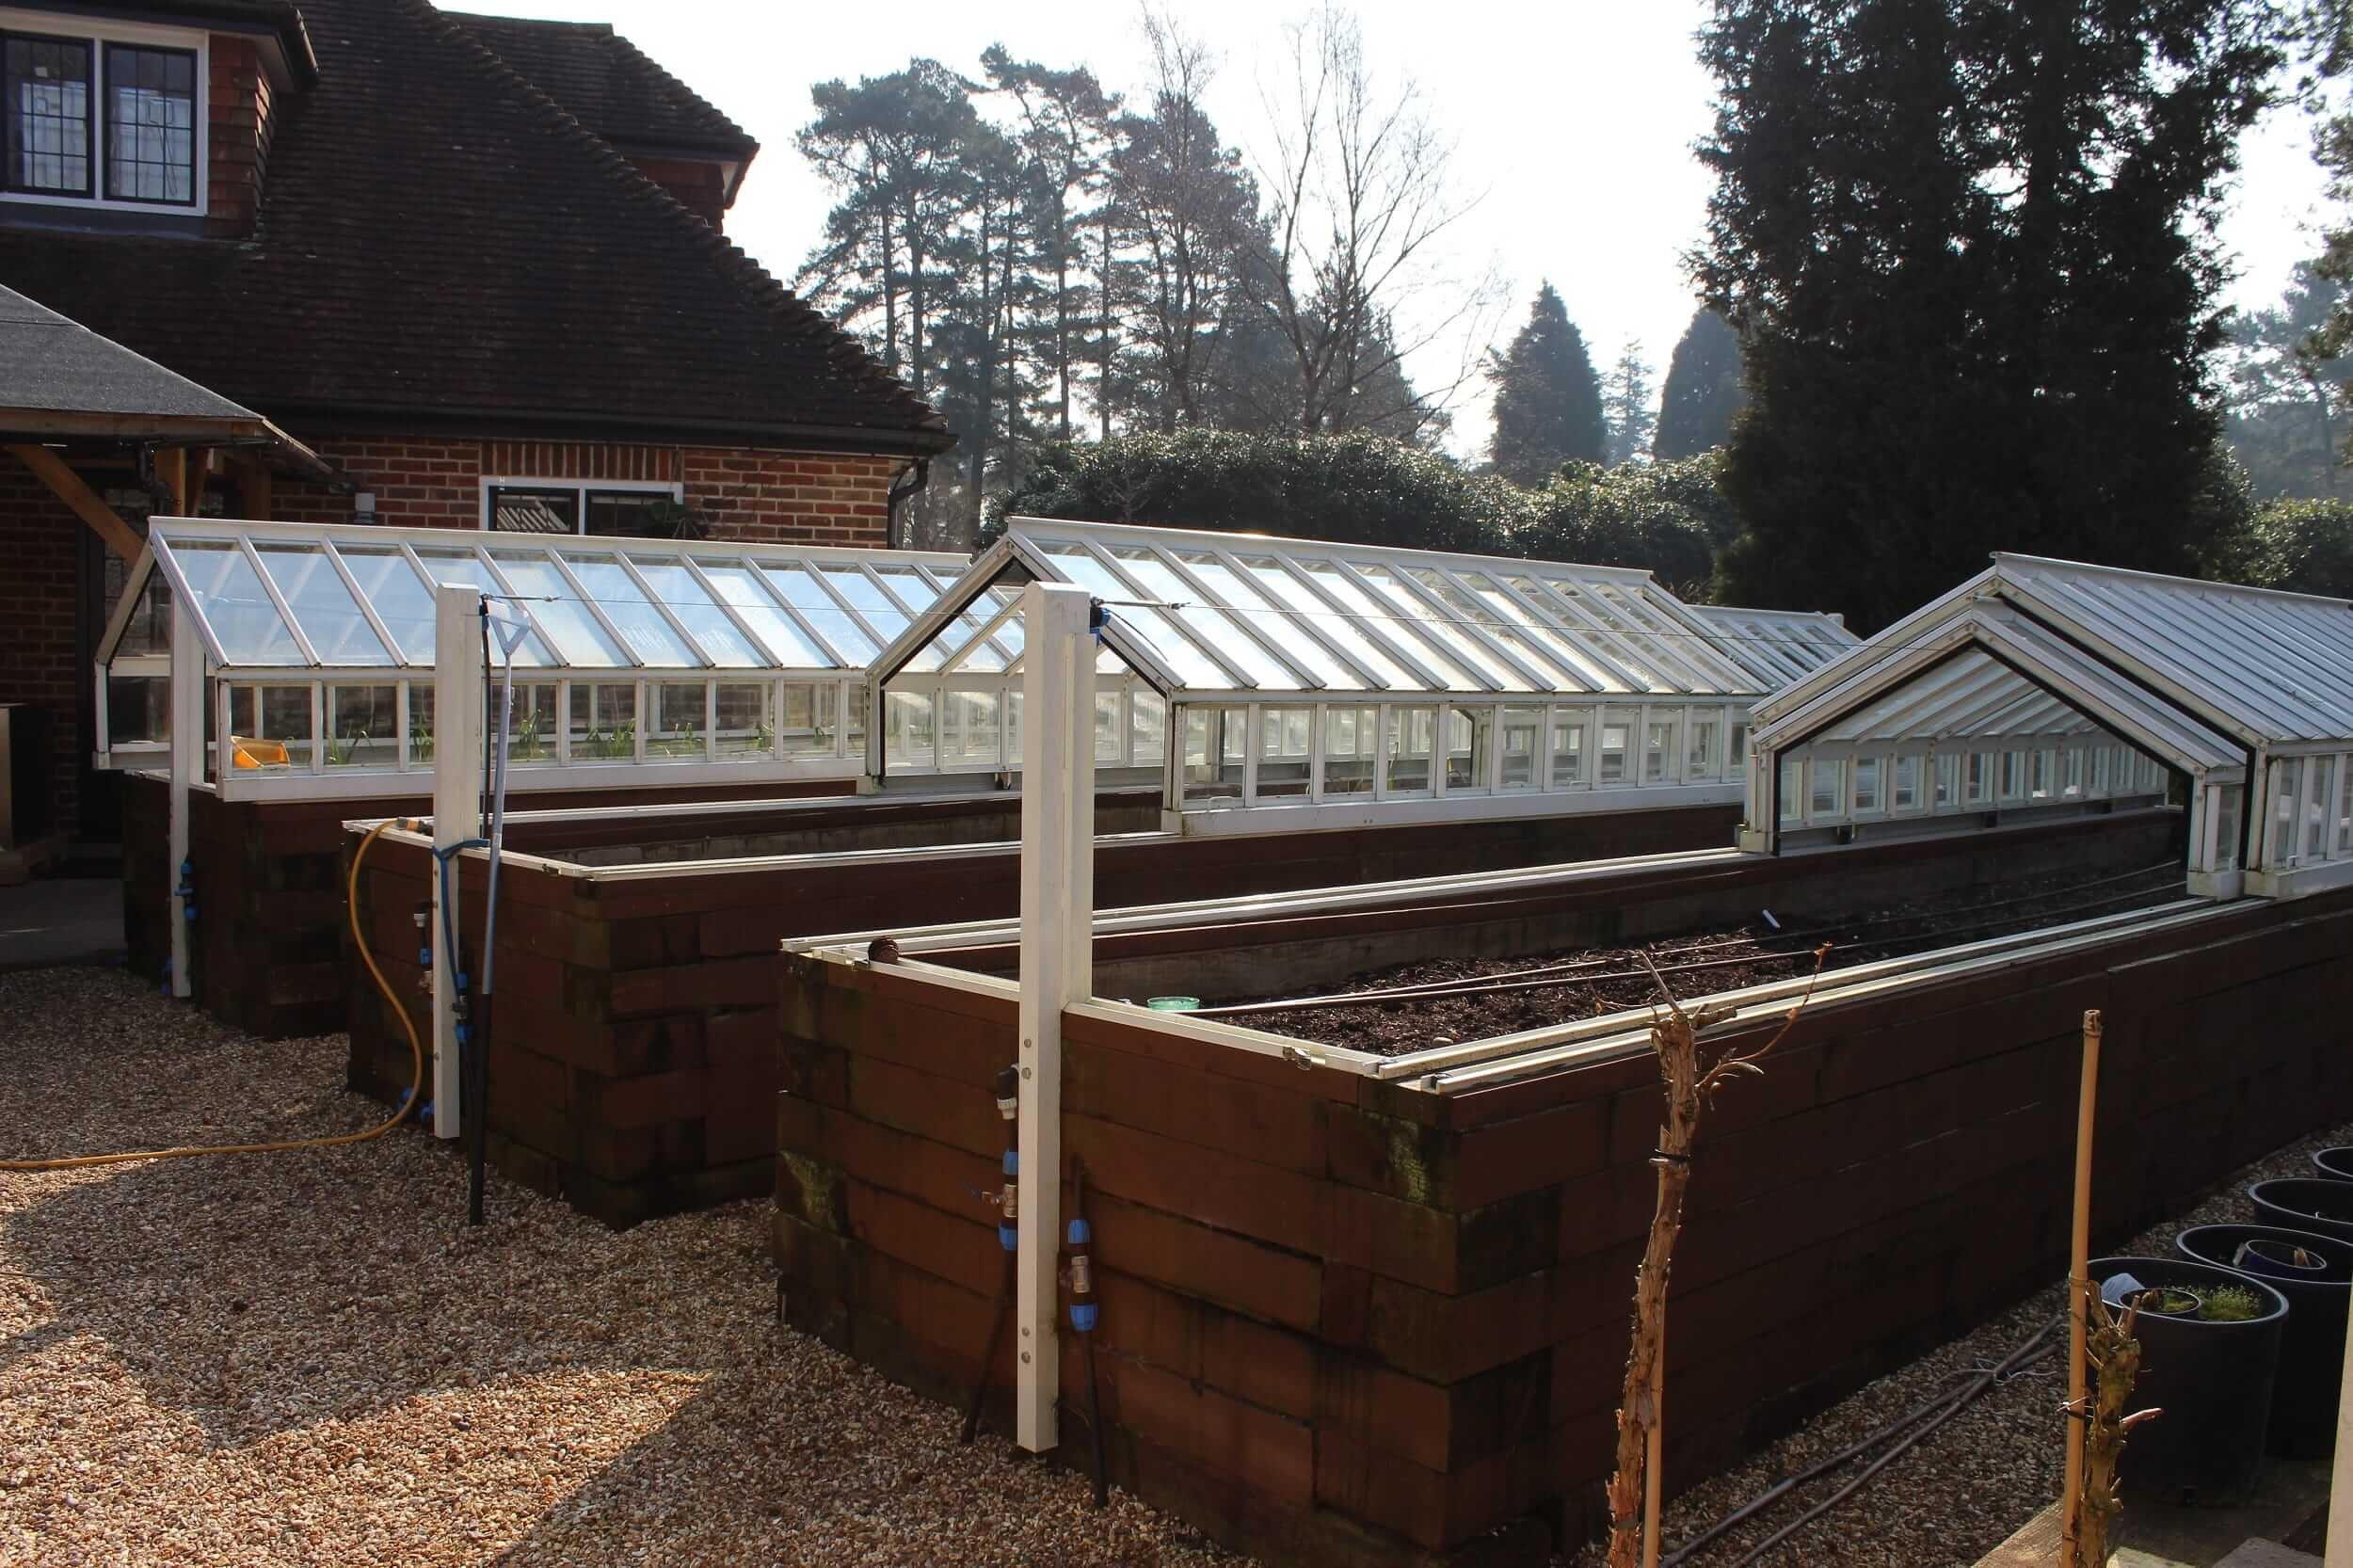 Telescopic greenhouses